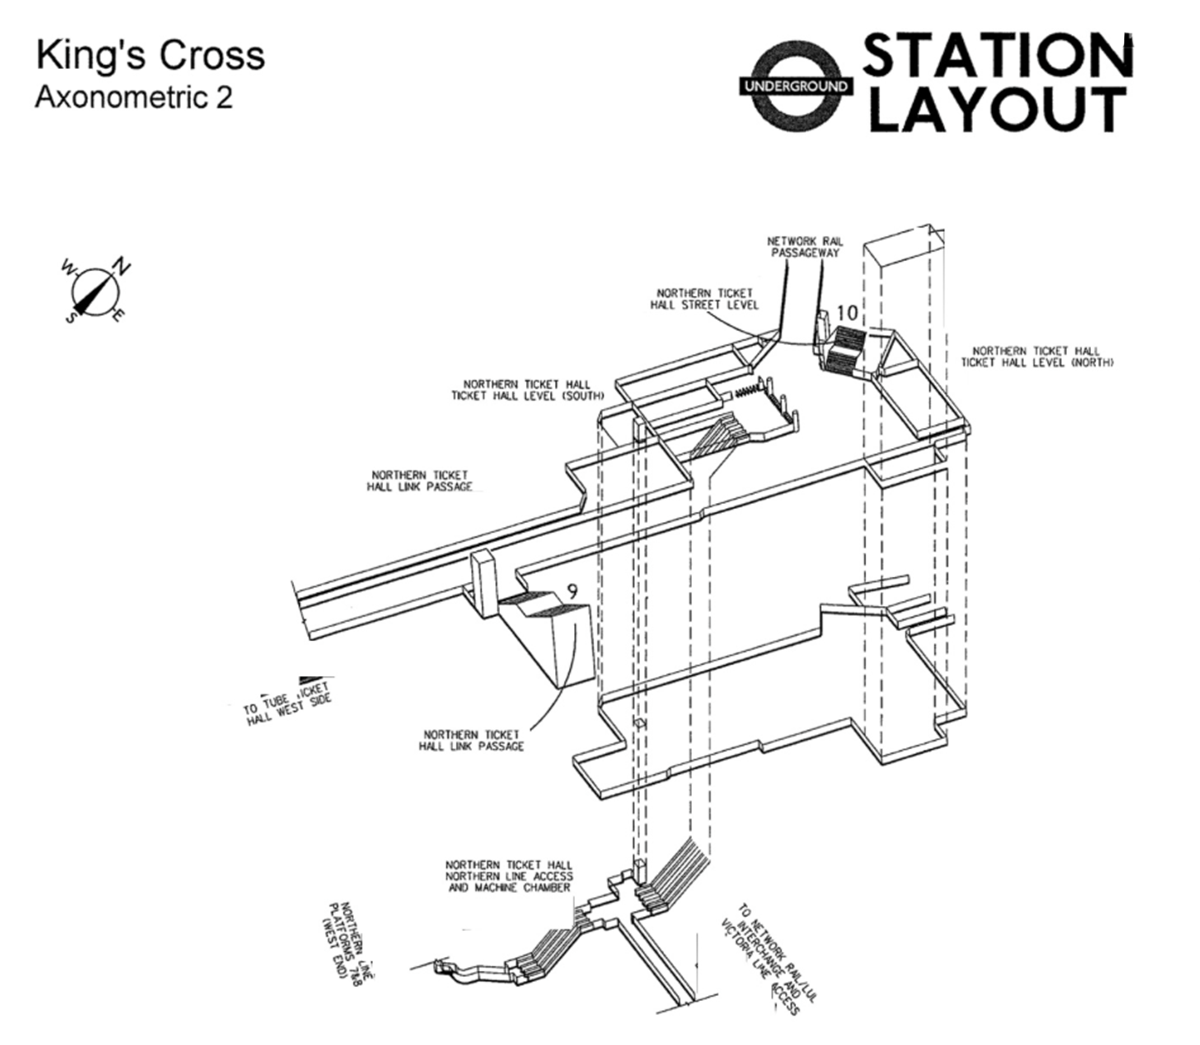 Axonometric 3d Diagrams Of Famous London Underground Tube